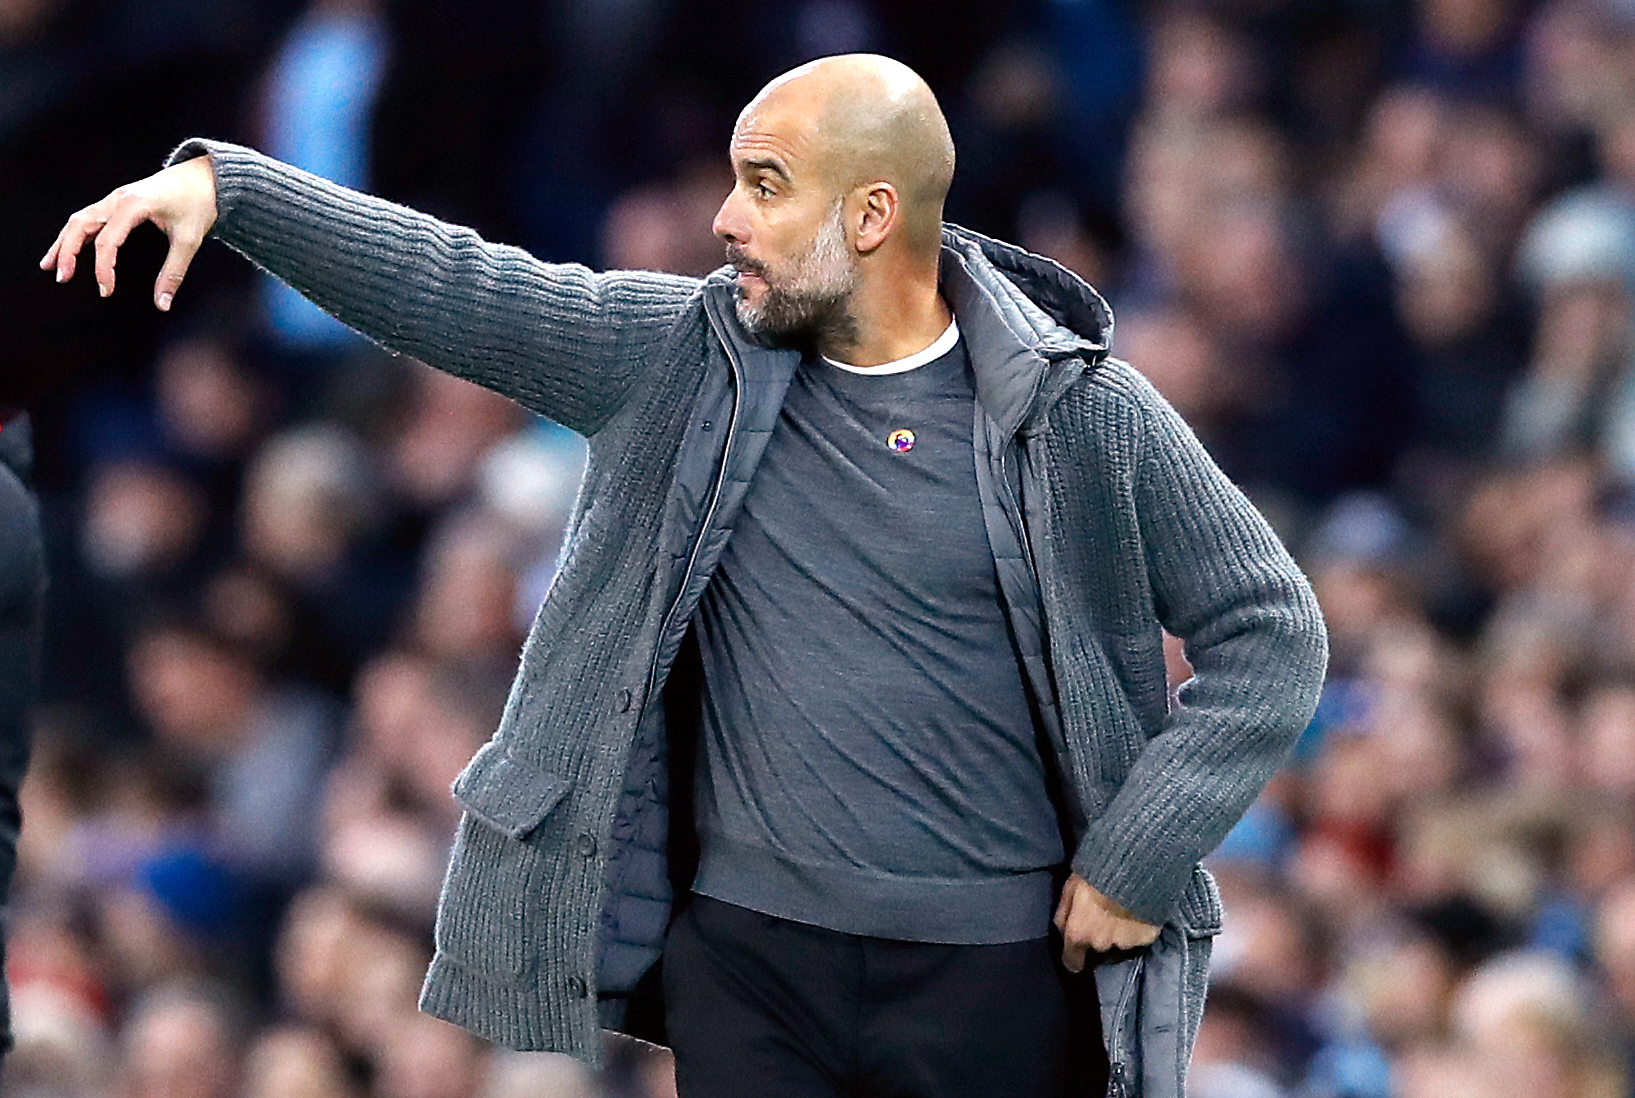 Pep Guardiola on the touchline (Martin Rickett/PA Wire)